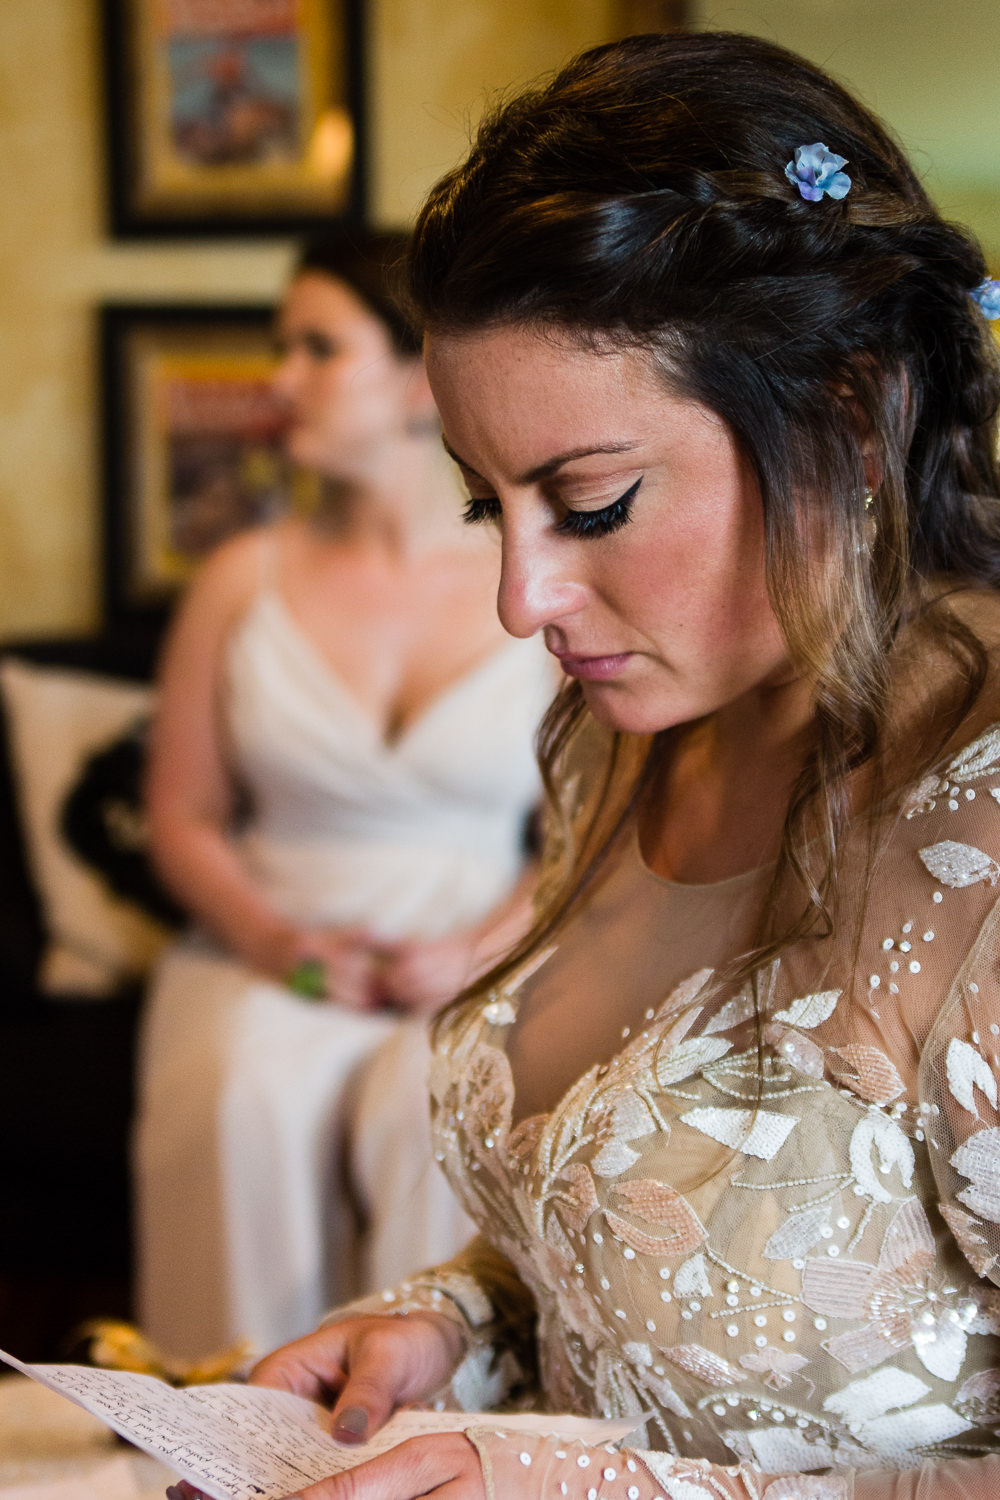 bozeman-hart-ranch-wedding-bride-reads-letter-from-groom.jpg